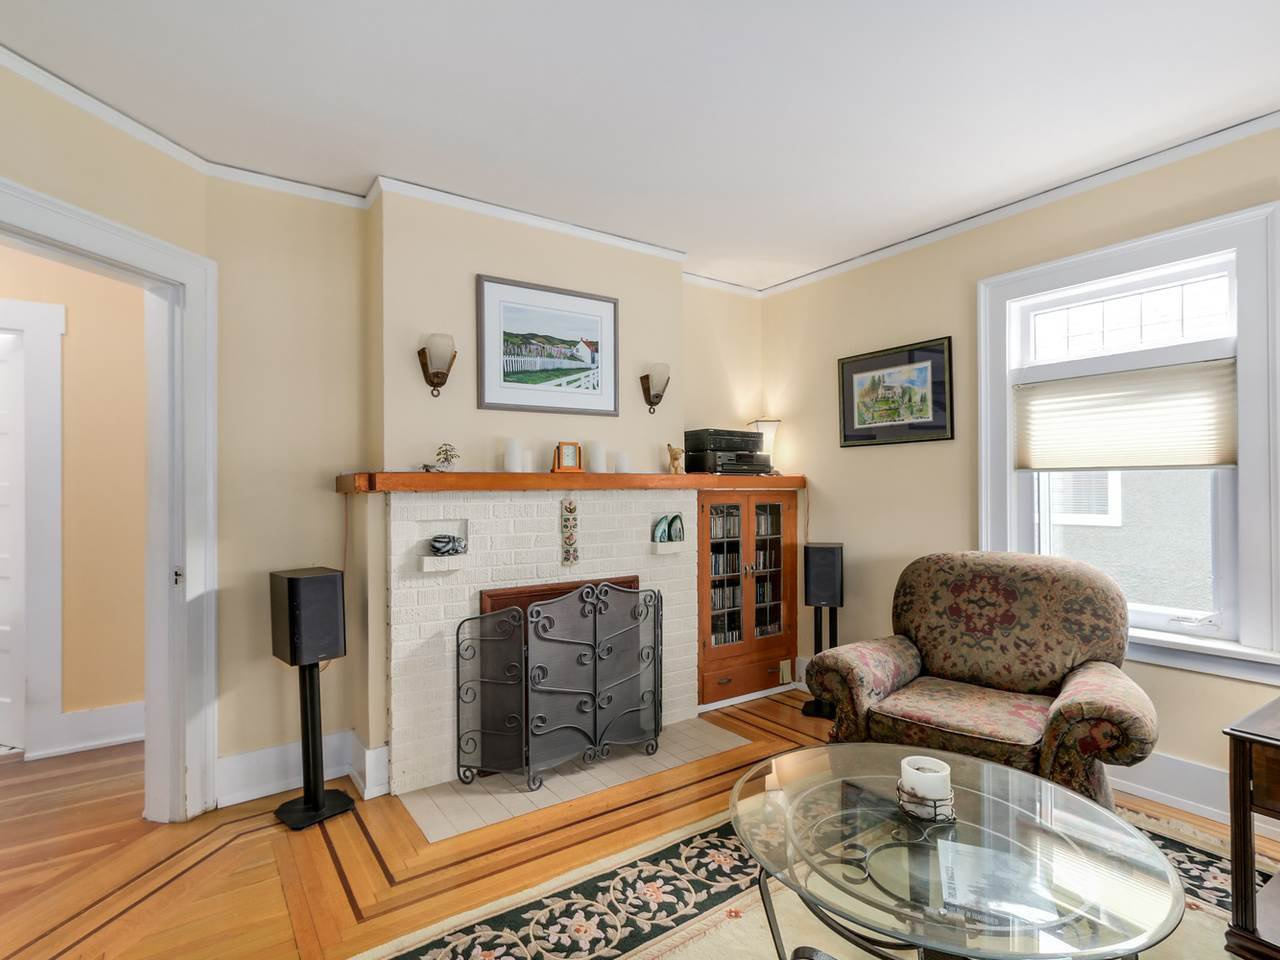 Photo 4: Photos: 1760 E 37TH AVENUE in Vancouver: Victoria VE House for sale (Vancouver East)  : MLS®# R2059026